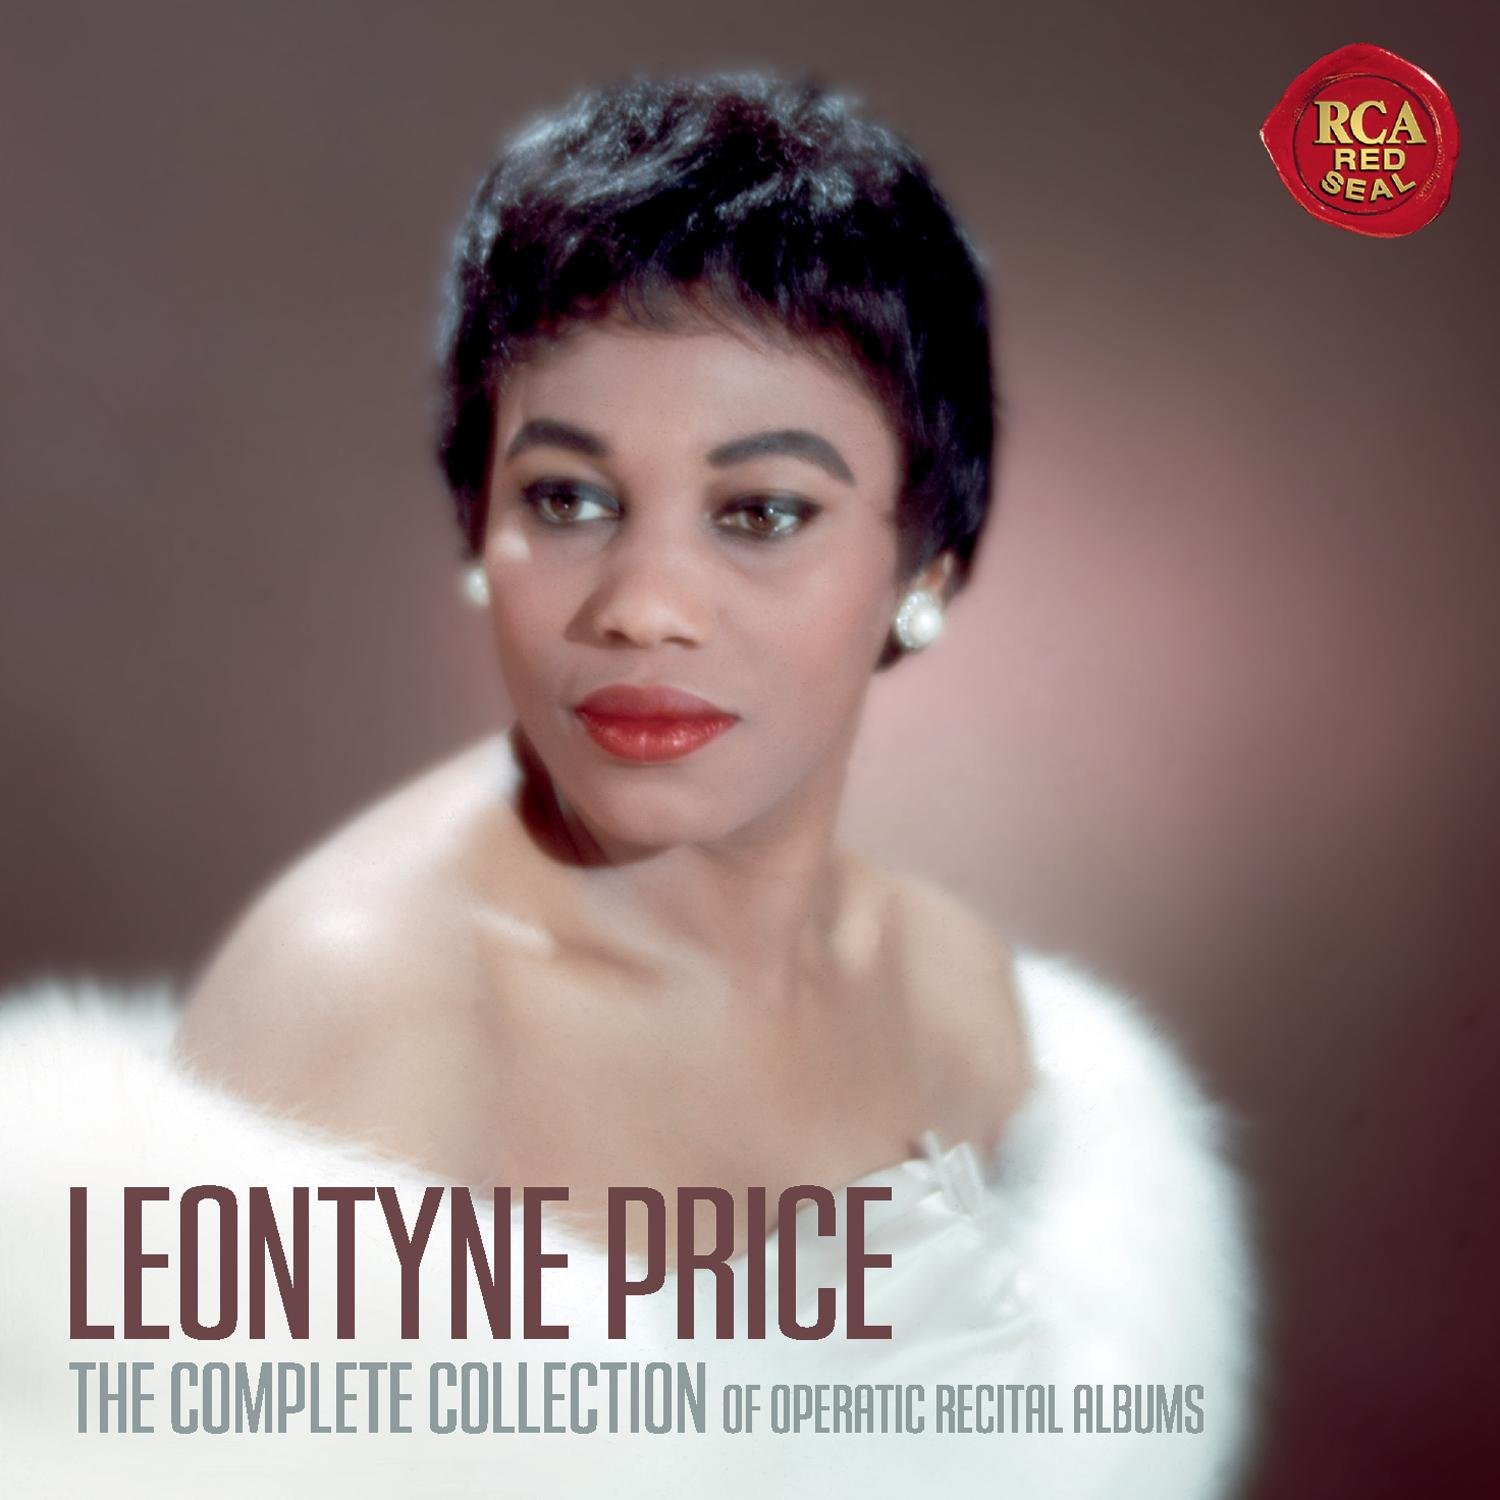 Leontyne Price - The Complete Album Collection of Opera Arias and Duets by Sony Classical